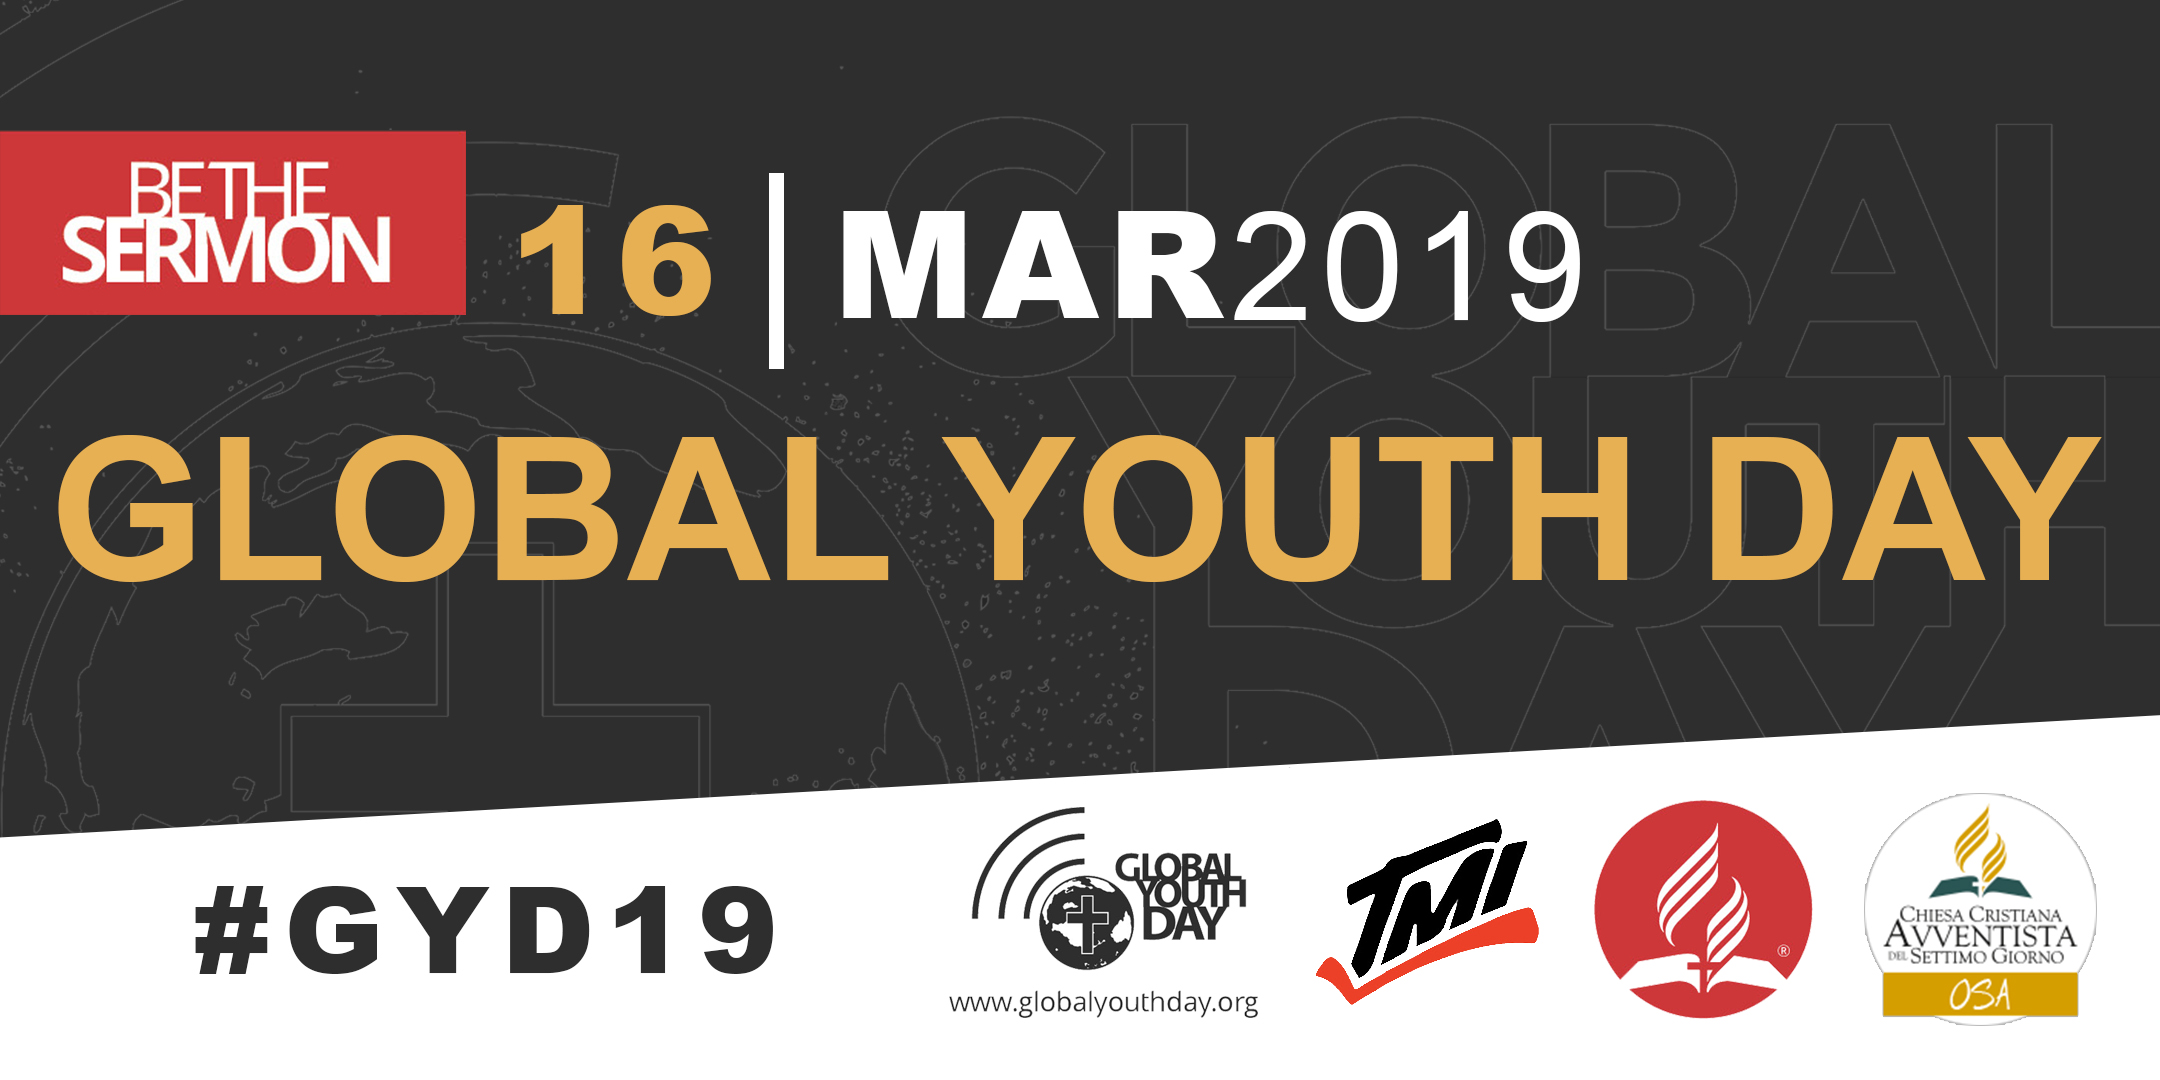 Global Youth Day 2019